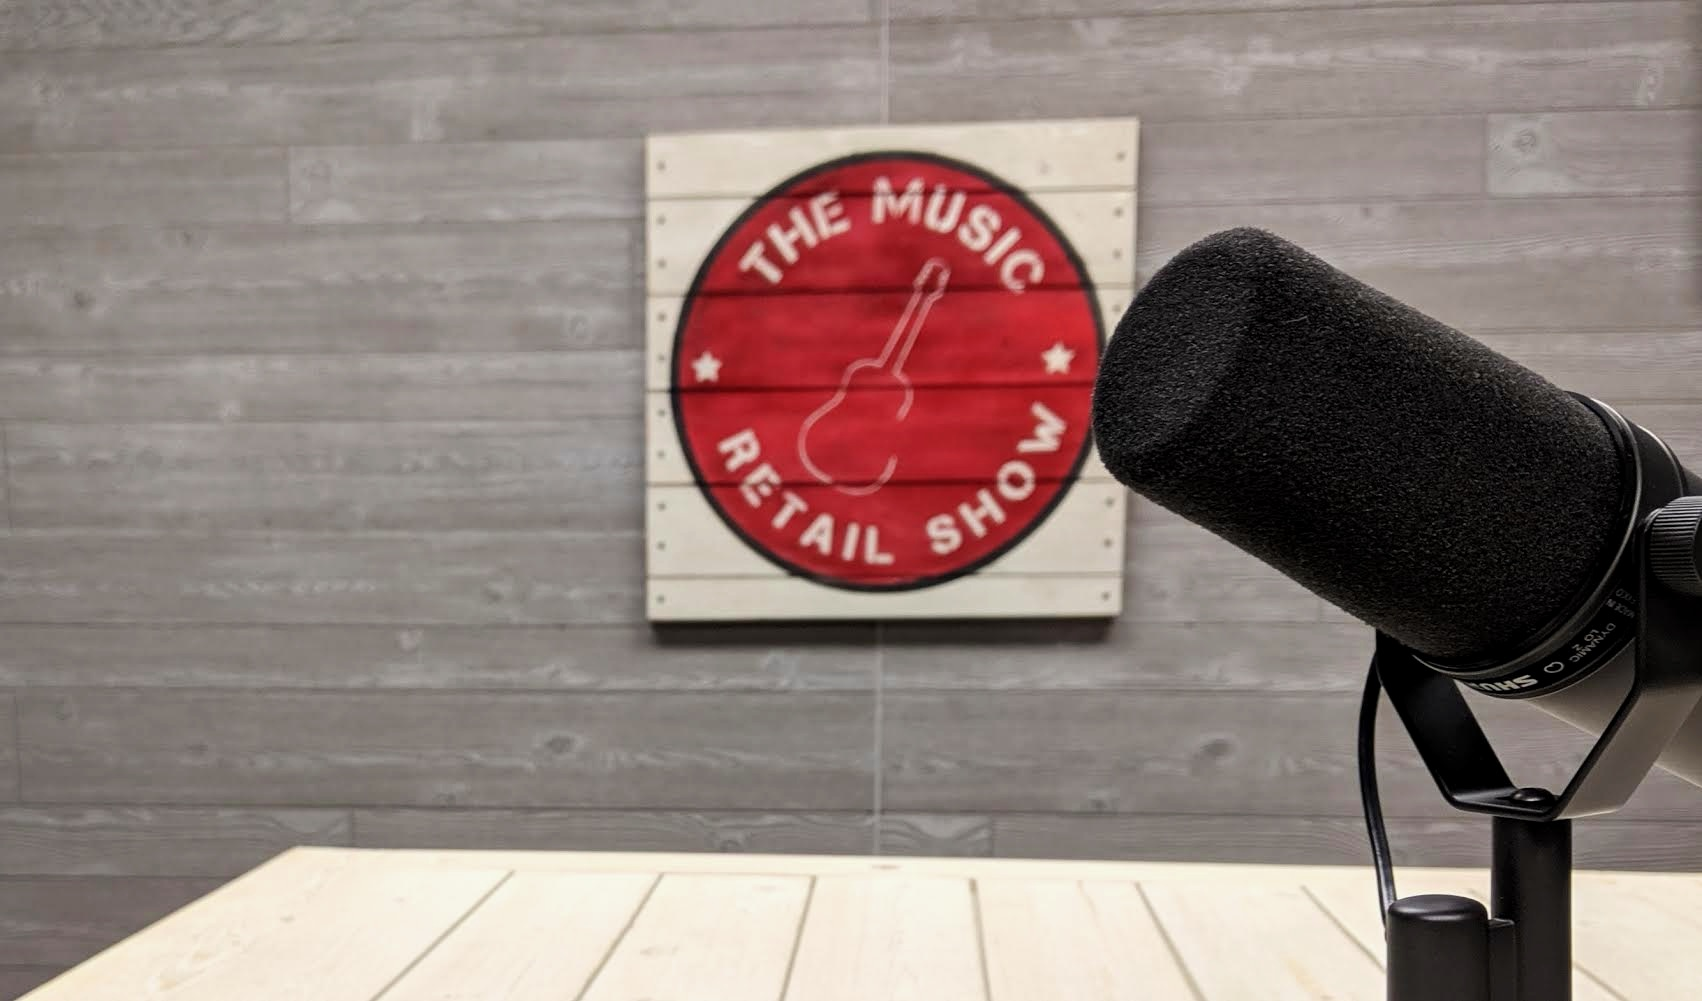 Our Mission - The Music Retail Show is a podcast dedicated to encouraging and inspiring those in Music Retail and the Musical Instrument Industry.